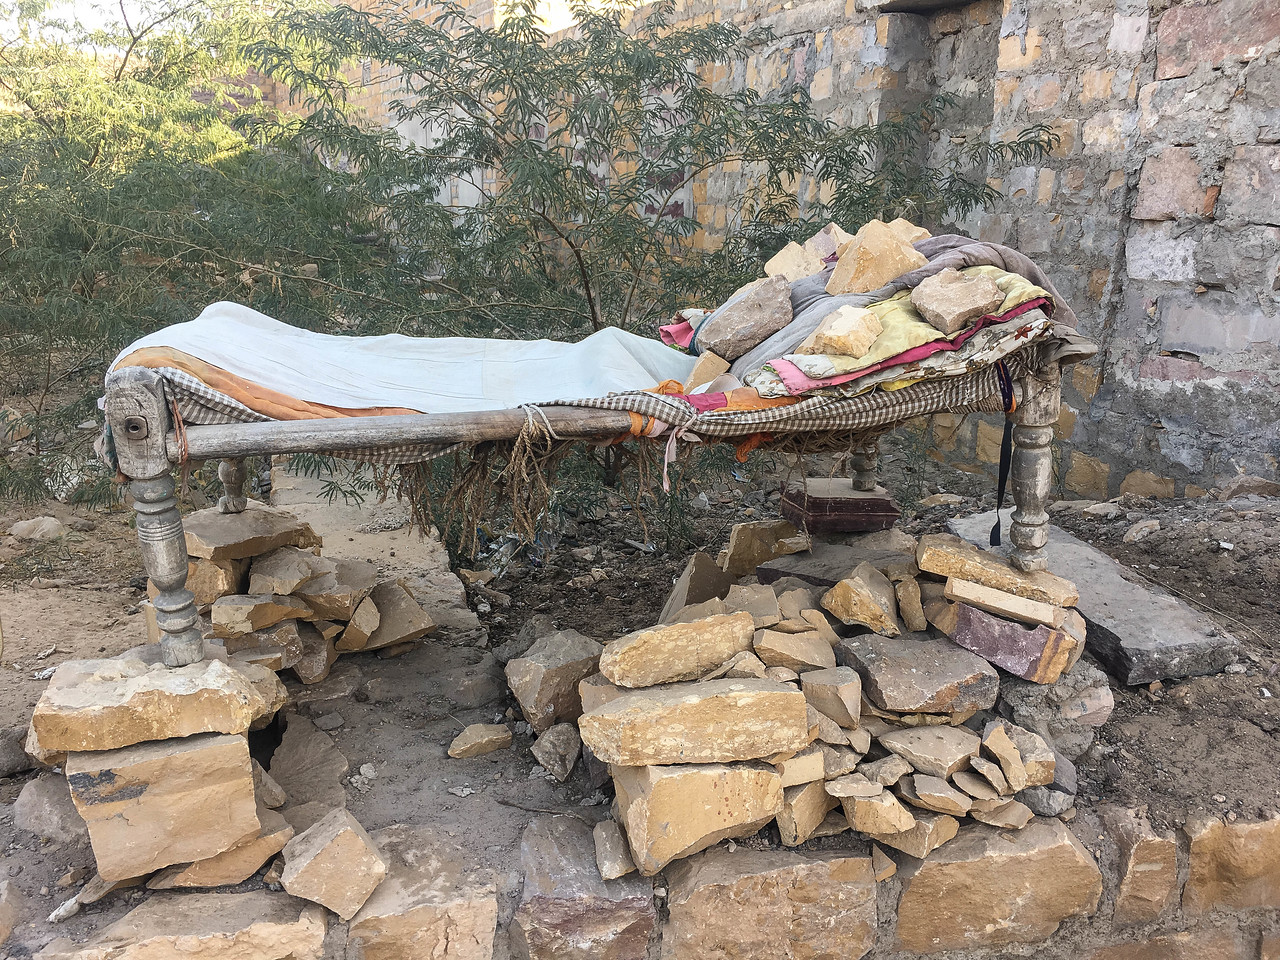 Mr, Natu Dan's bed somehow balanced on these stones. He arrives late every eveniing from hard labour work to warm up in ftont of a fire and sleeps soundly till sunrise. It is a mystery the bed does not topple over. I did not believe the story until I stayed up late one night to check.